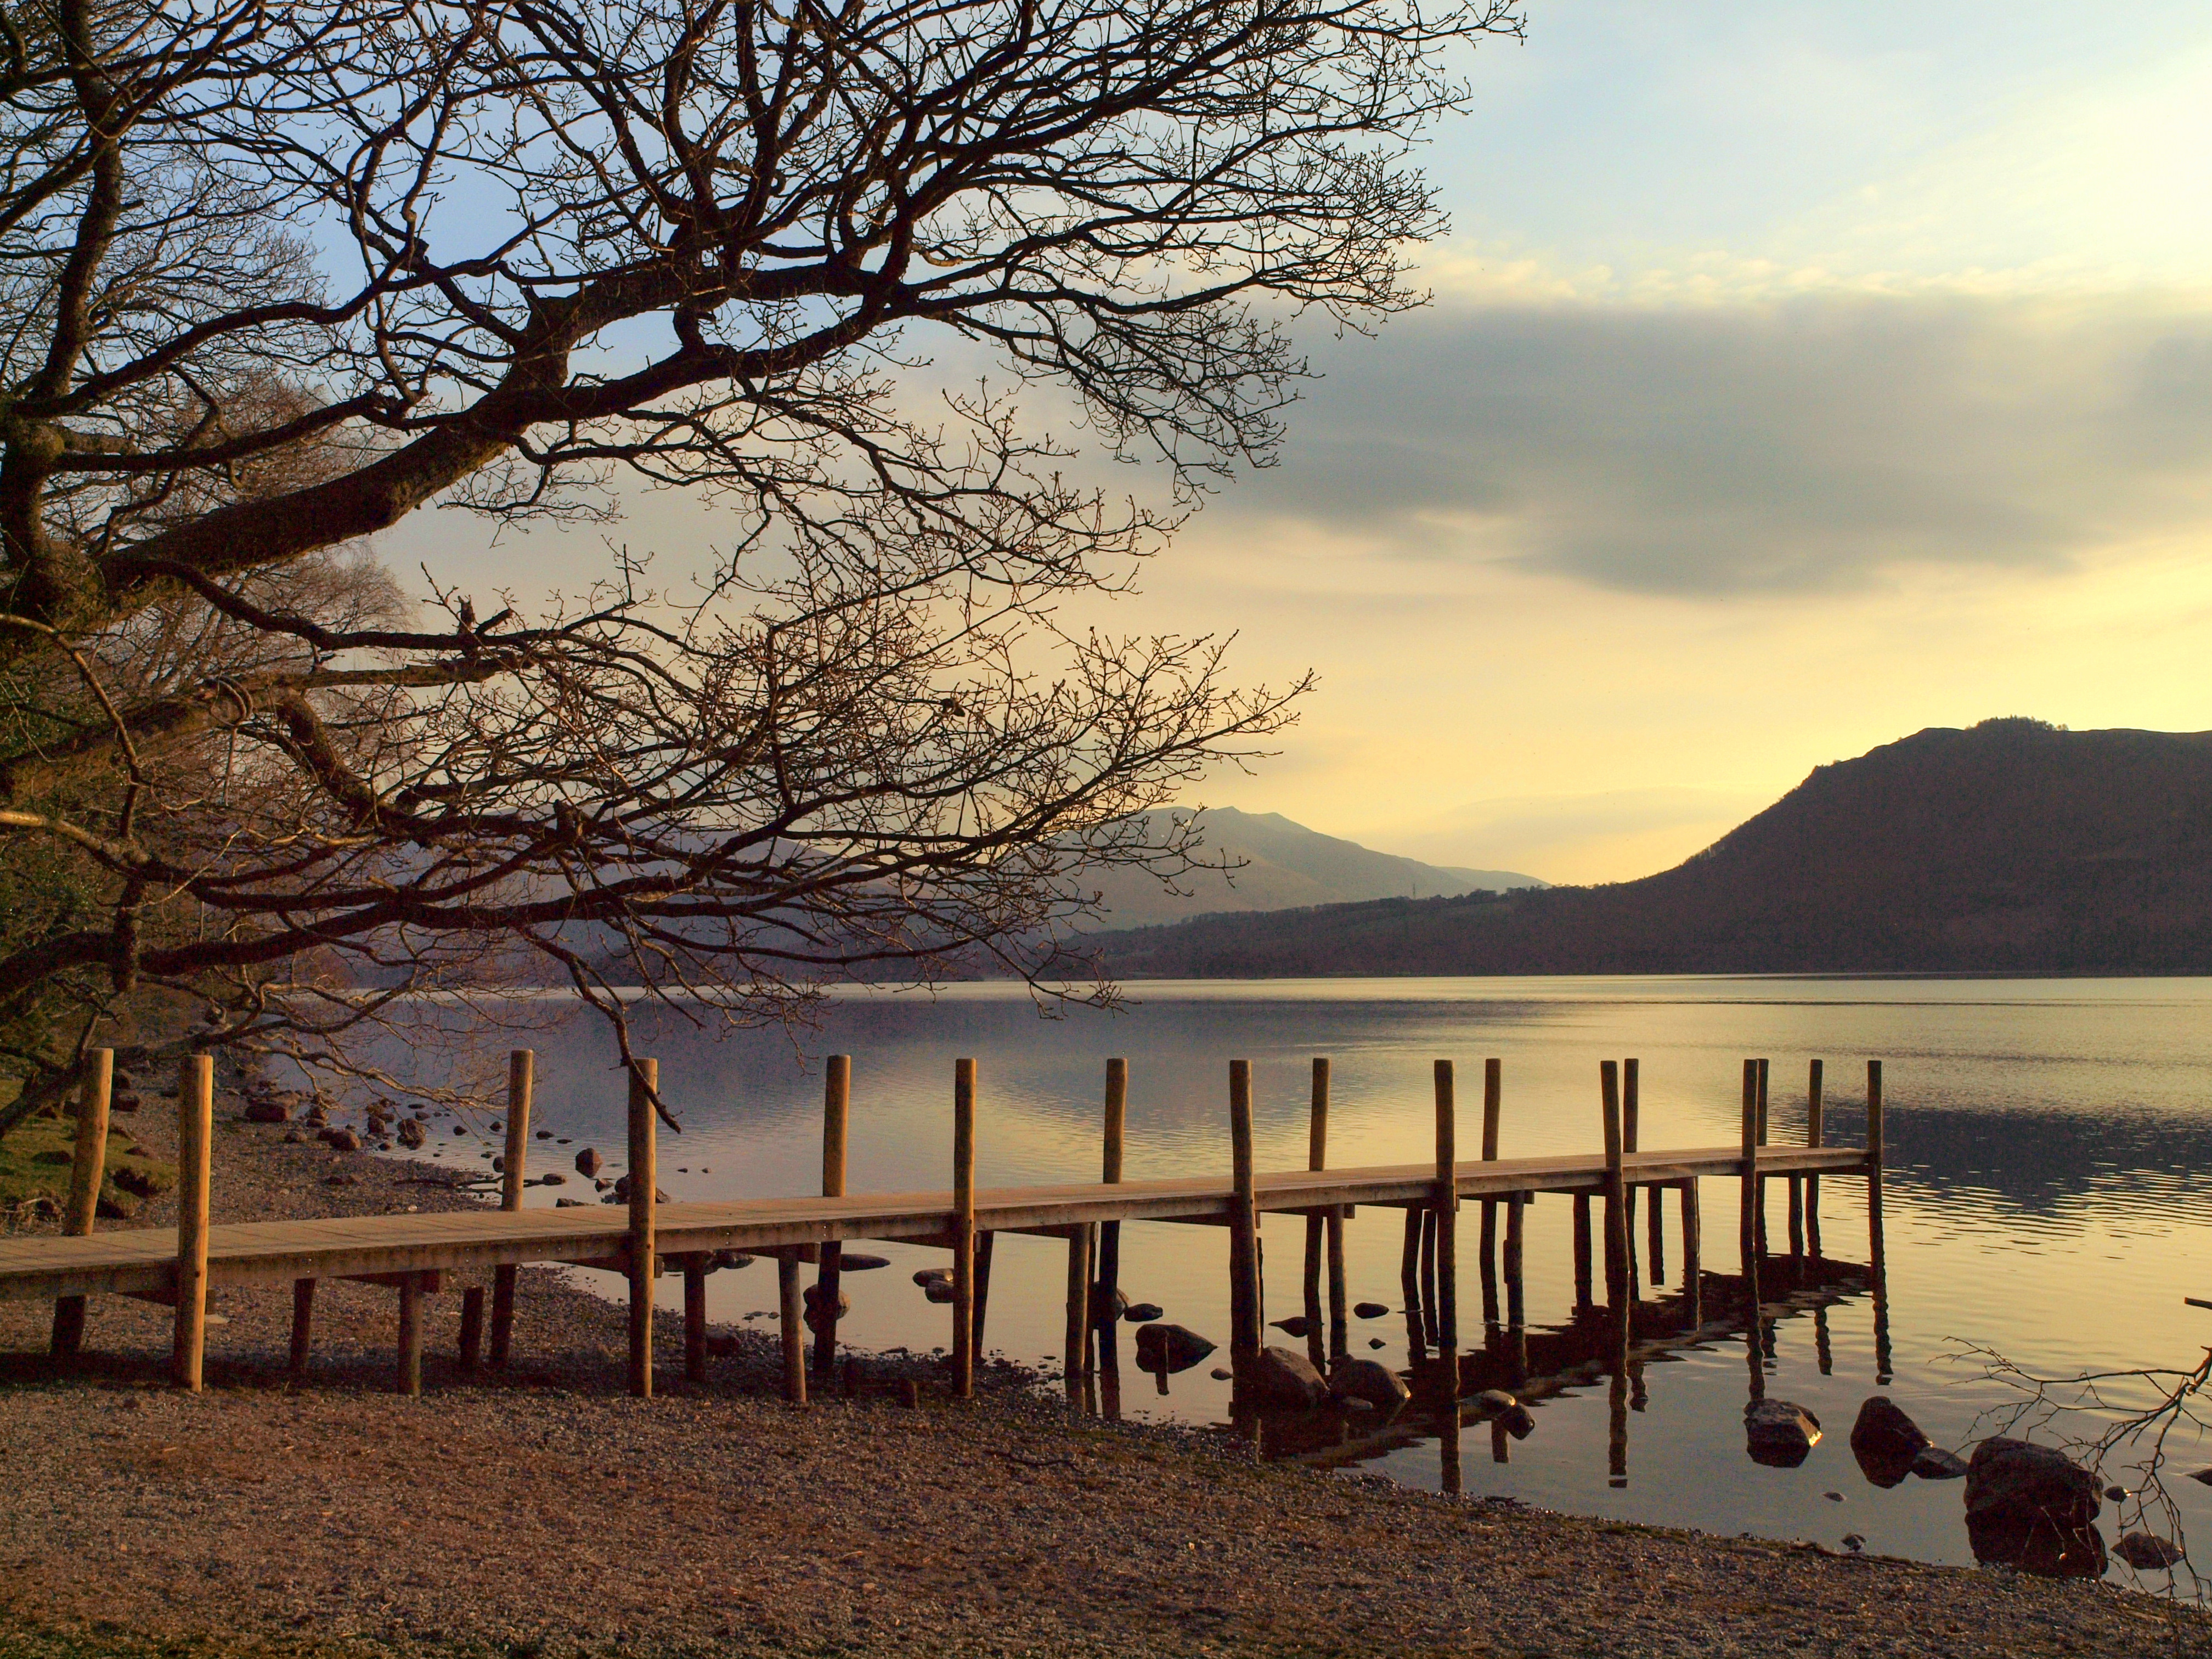 Dawn over Derwentwater